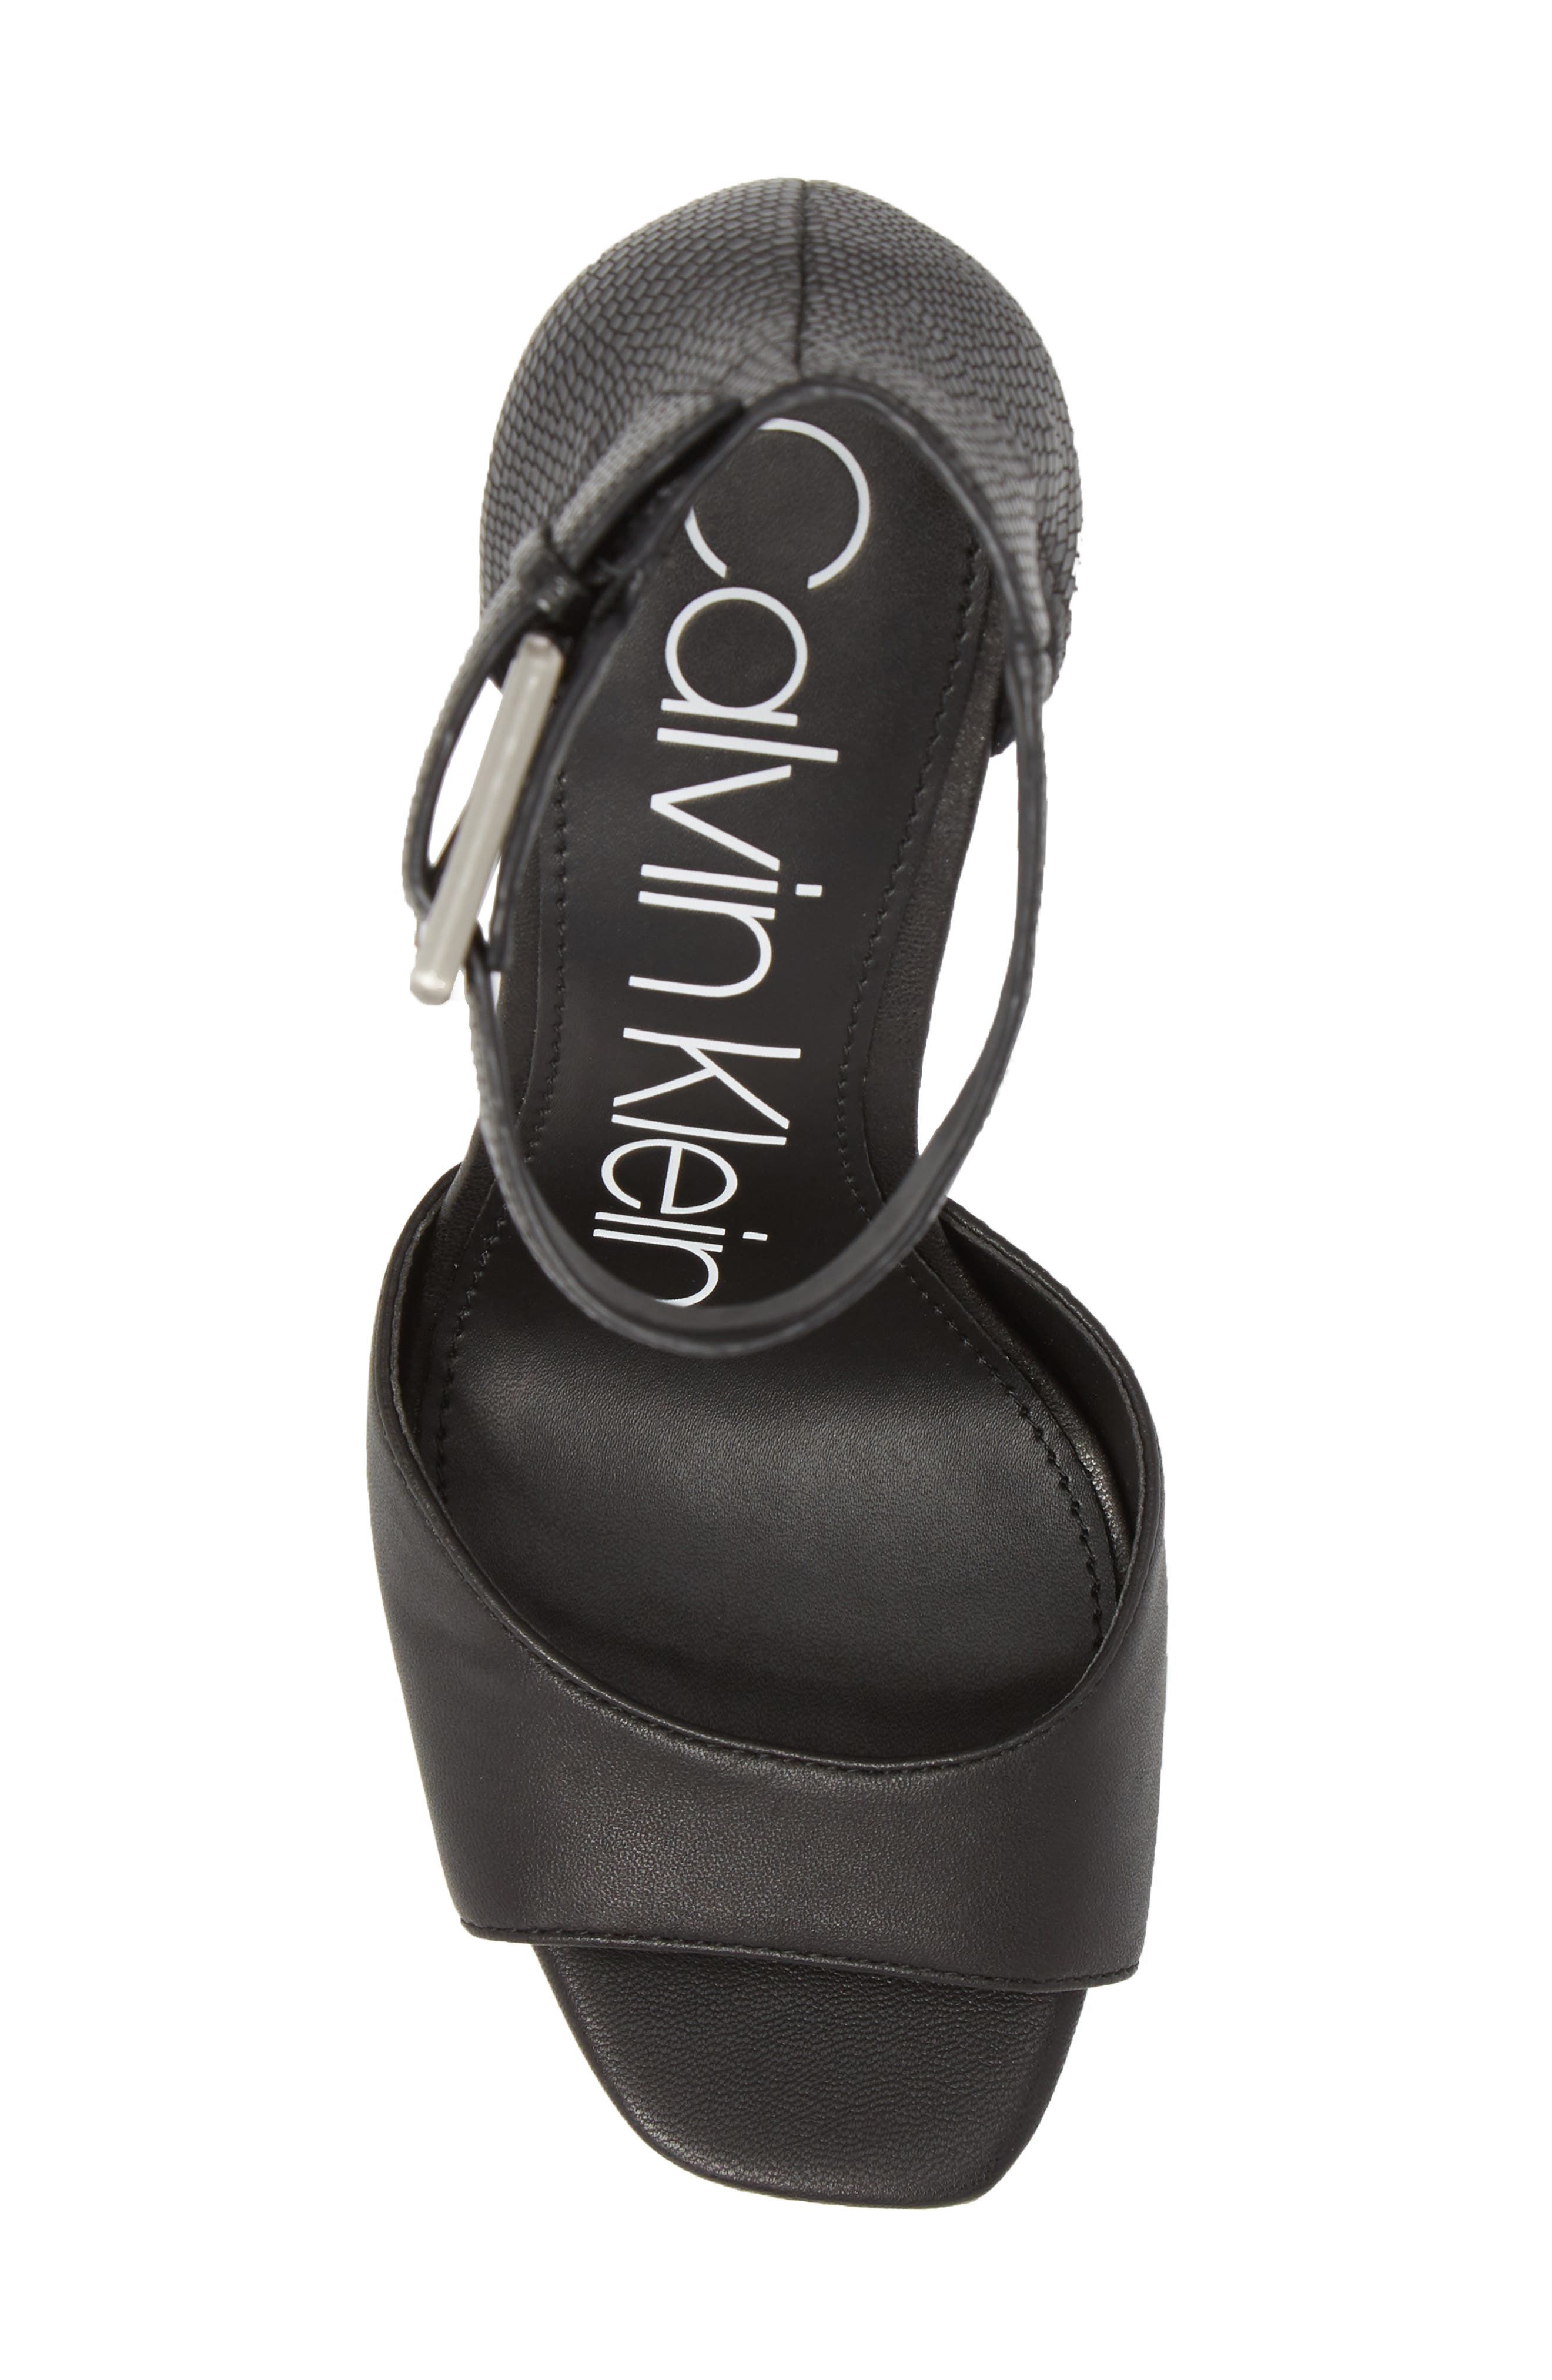 Marinda Halo Strap Sandal,                             Alternate thumbnail 5, color,                             BLACK LEATHER